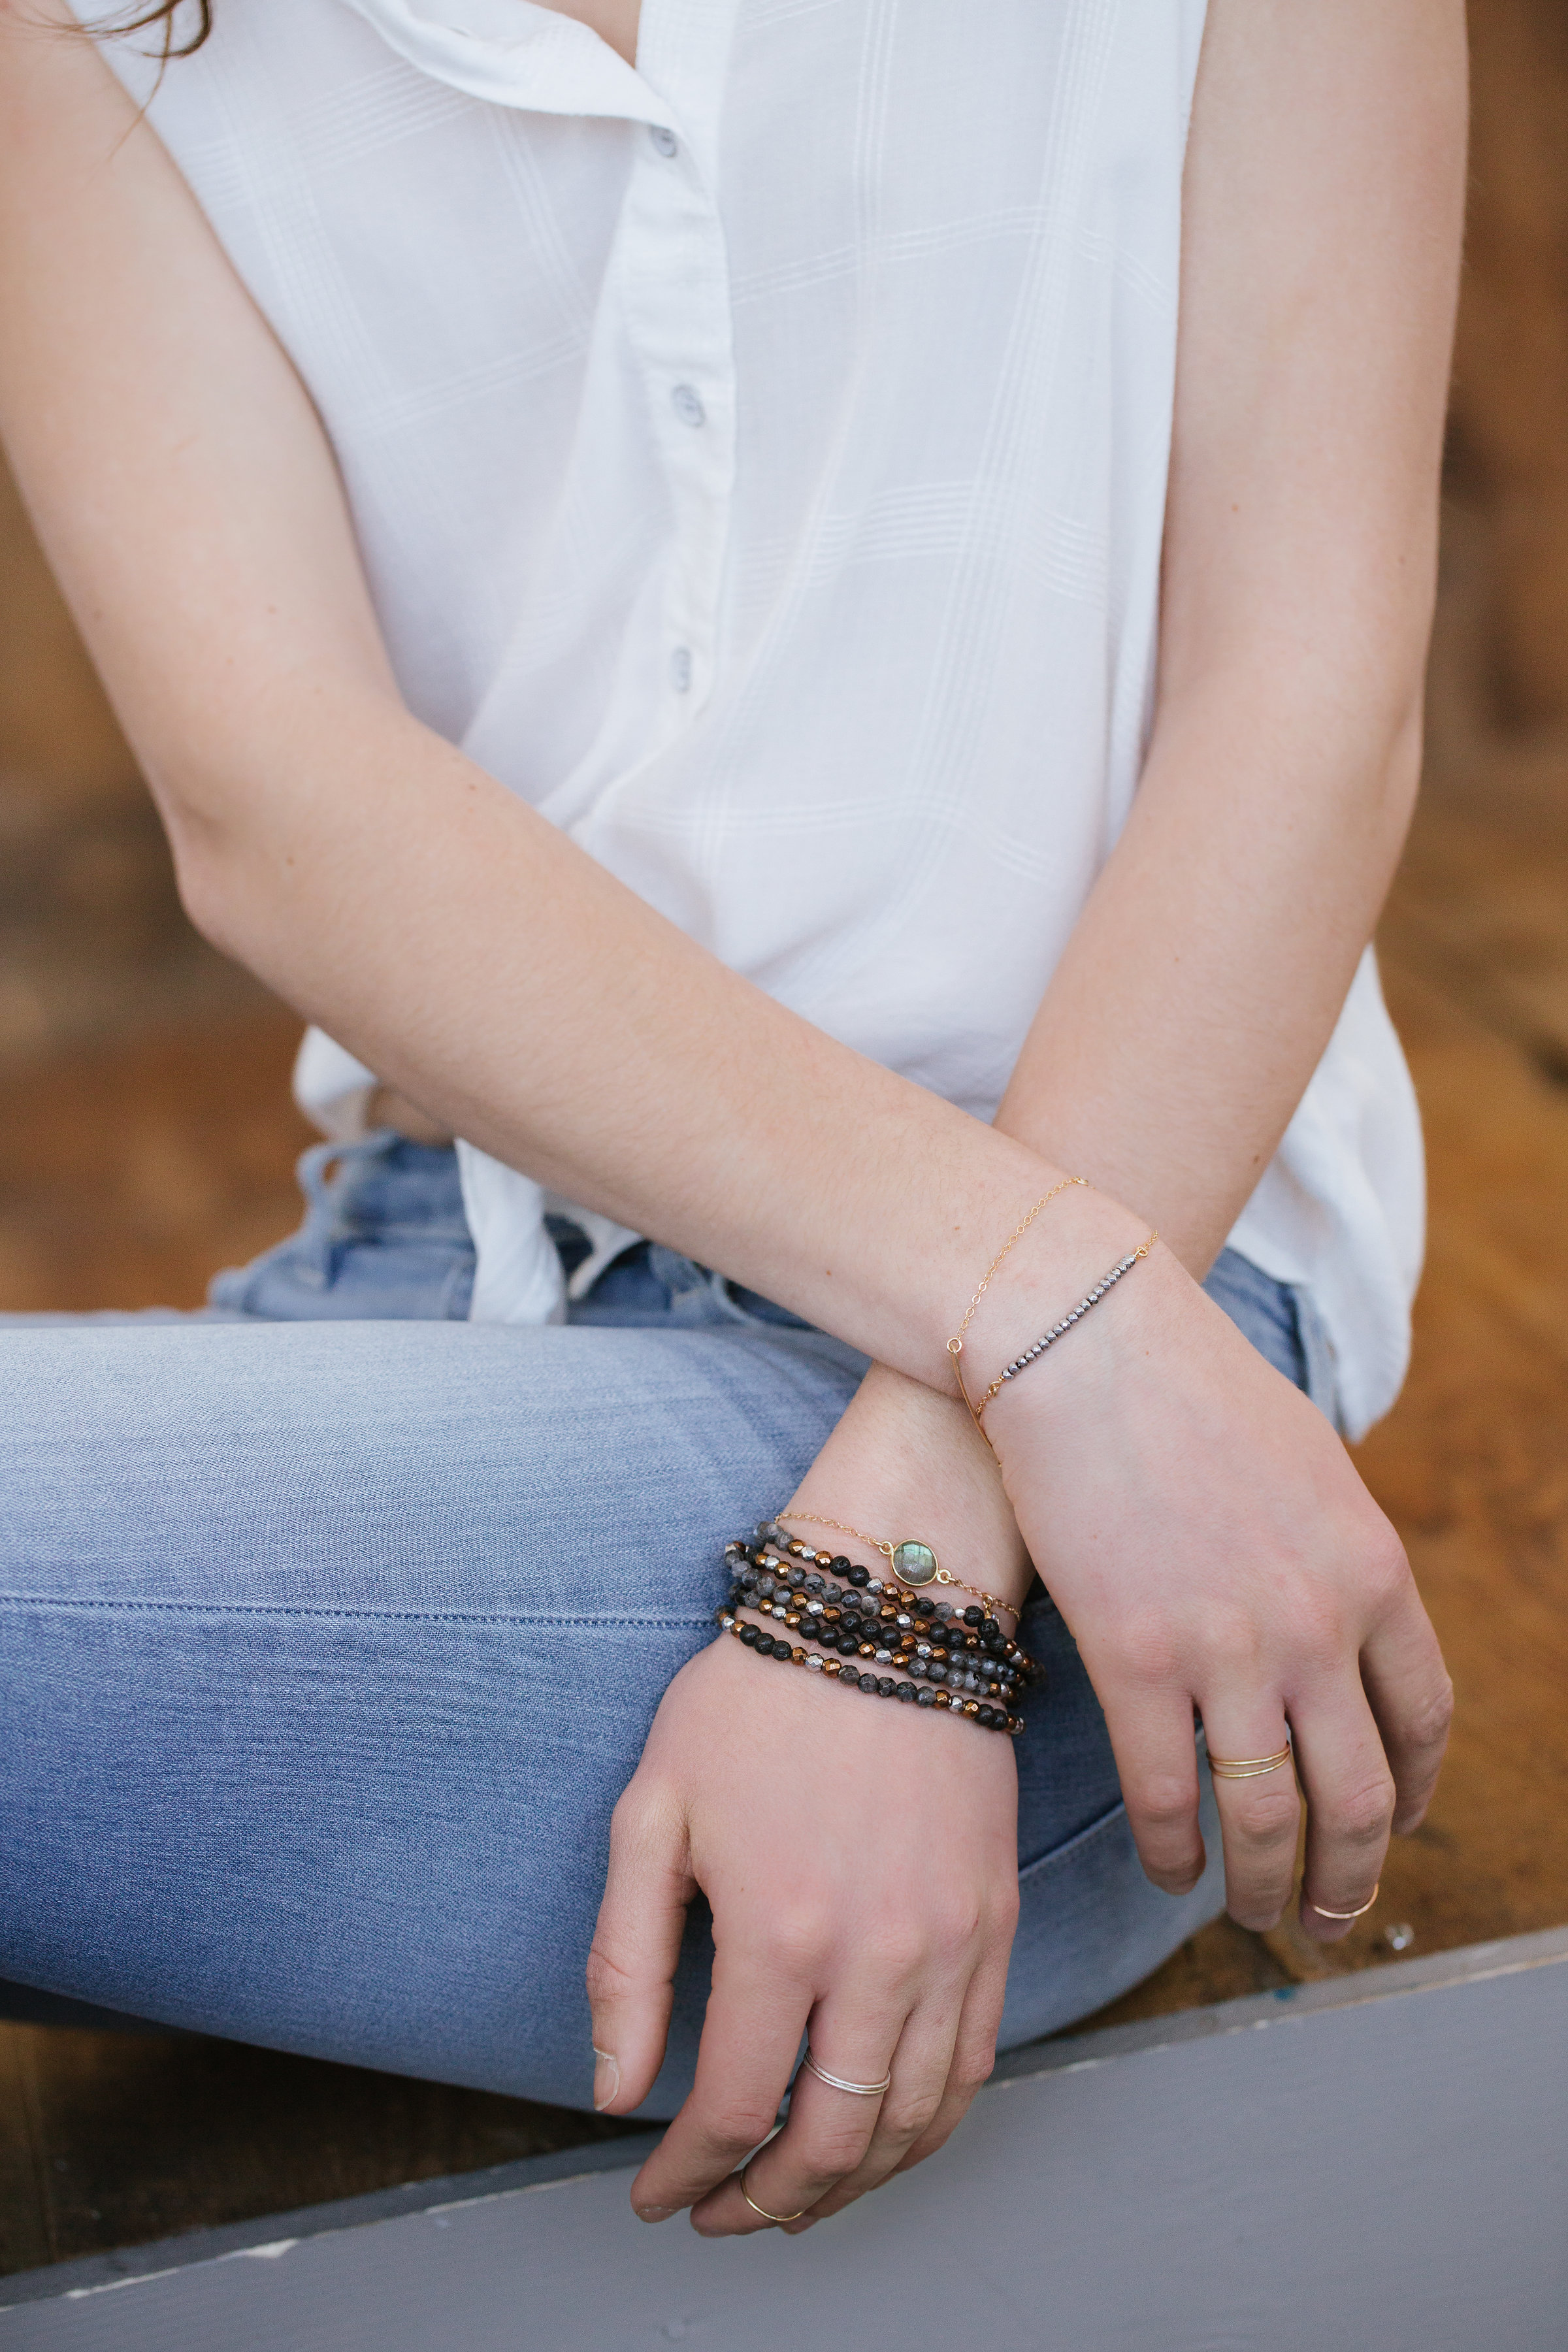 2.Bracelets: - 1. Choose bracelets with various sized beads to achieve dimension.2. Around here, we love to wear bracelets in odd numbers. We typically stick to three bracelets on one wrist - and maybe one more on the other wrist if your feeling spunky!3. For a casual day-time look, I like to stack all beaded bracelets together. And for a dressier, evening look, I like to stack several chain bracelets together and leave my beaded stackers at home.